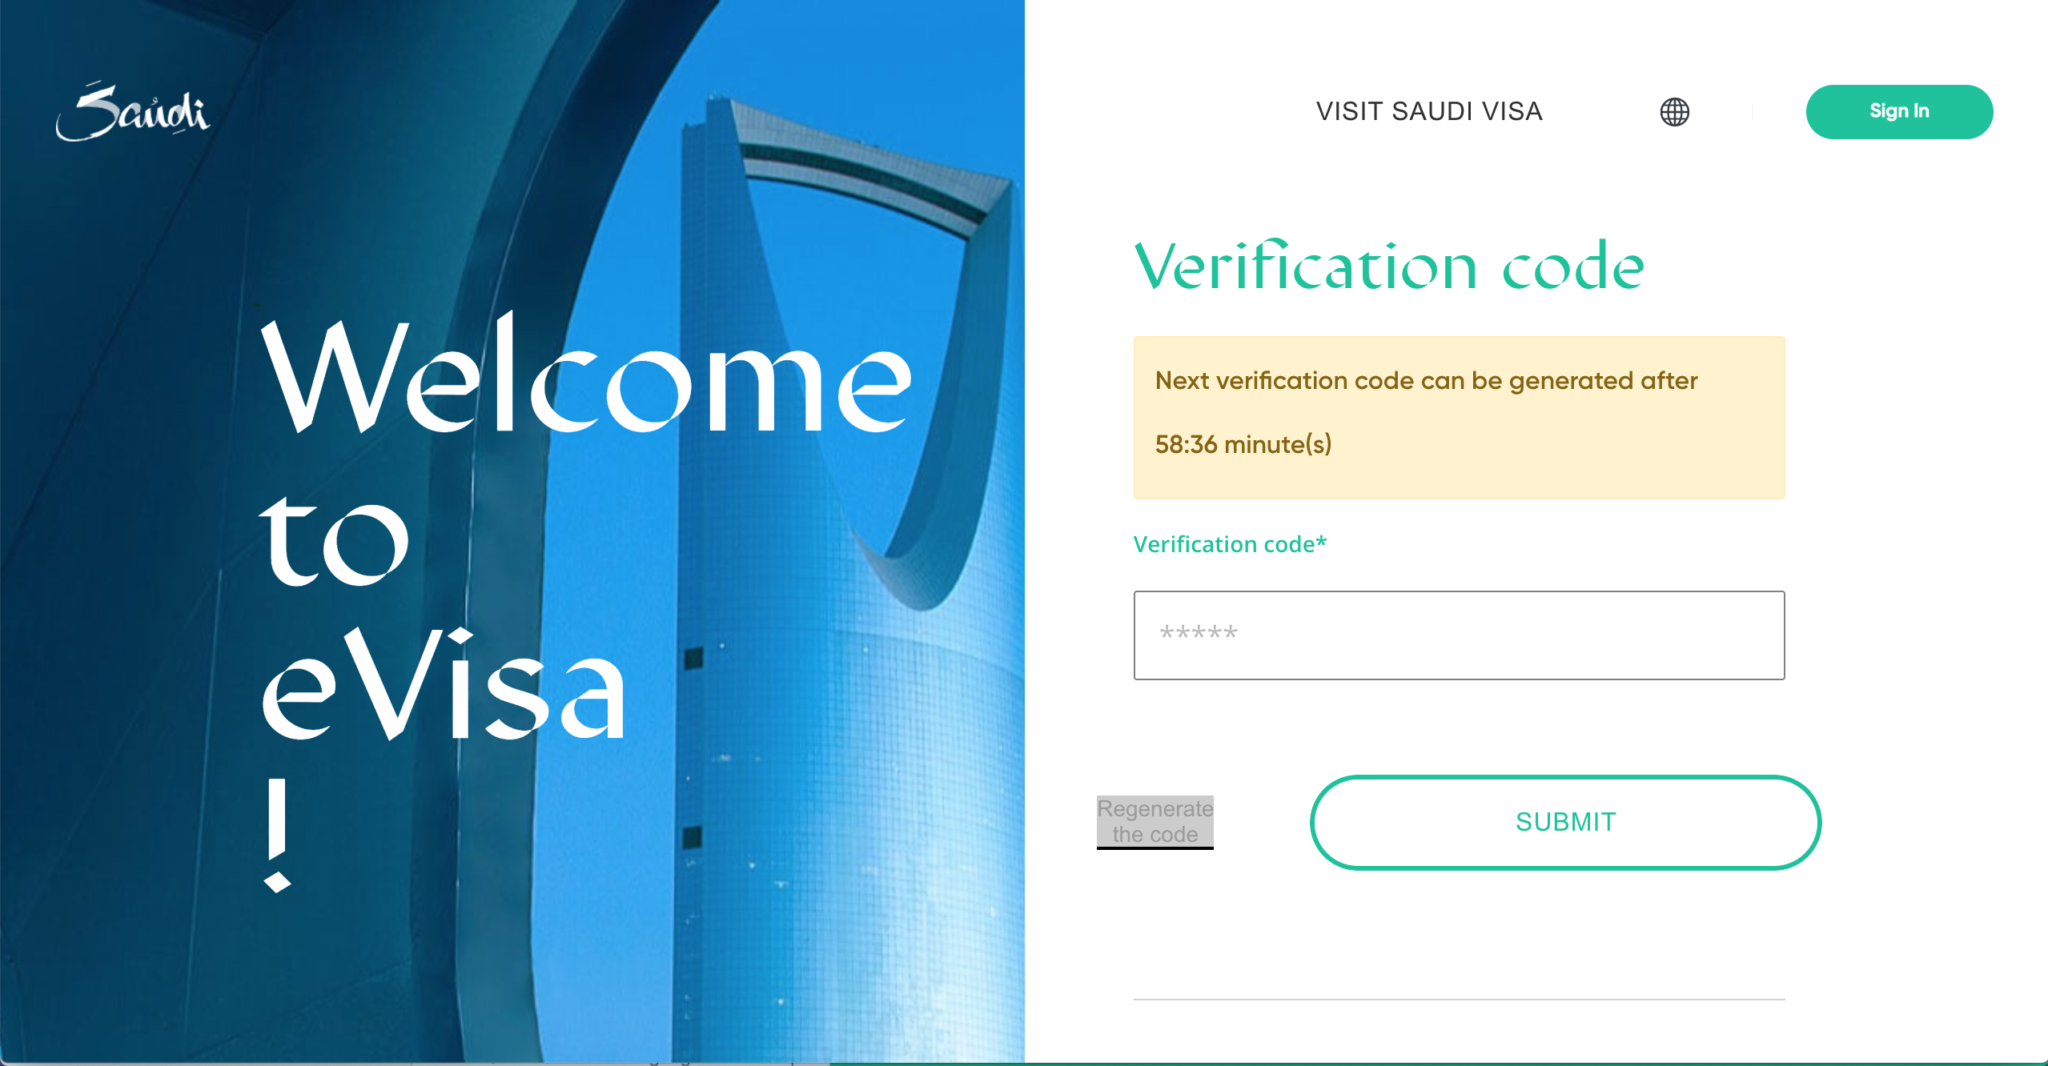 Saudi Arabien Visa Verification Code